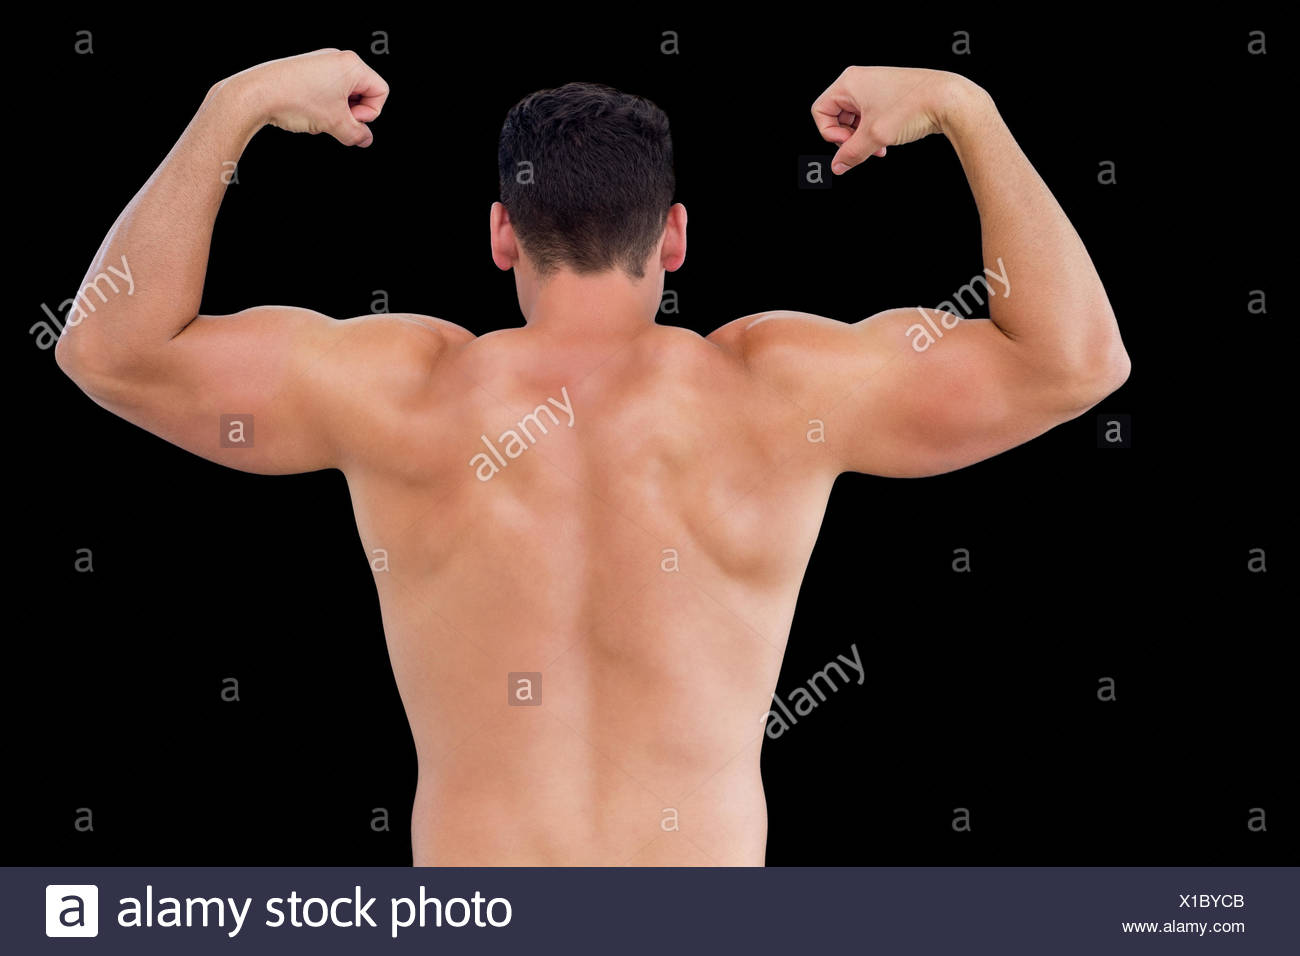 Rear view of shirtless muscular man flexing muscles Stock Photo